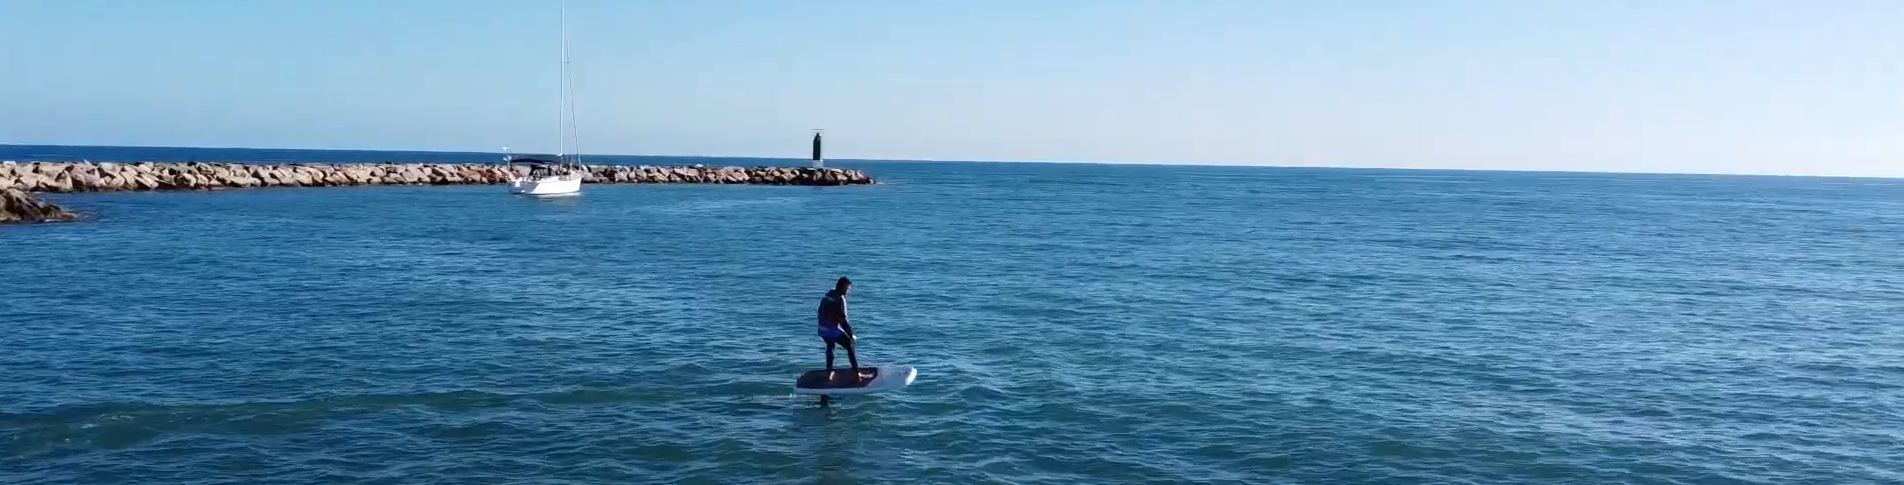 Man riding by boat